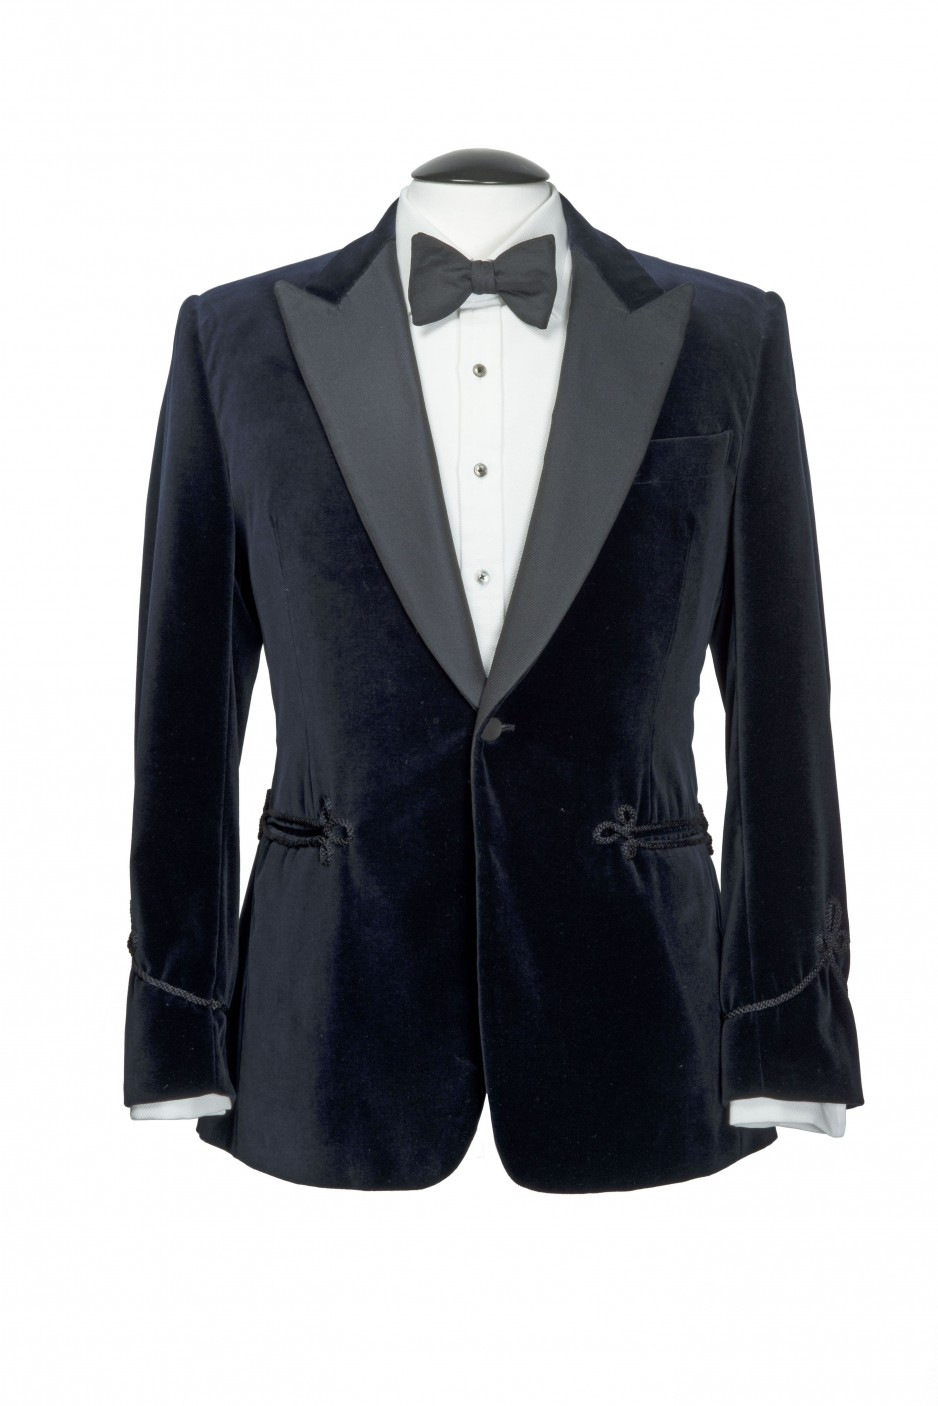 Clothing Shots : Savile Row and America - Kent Haste & Lachter - Original Pepe Fanjul dinner jacket